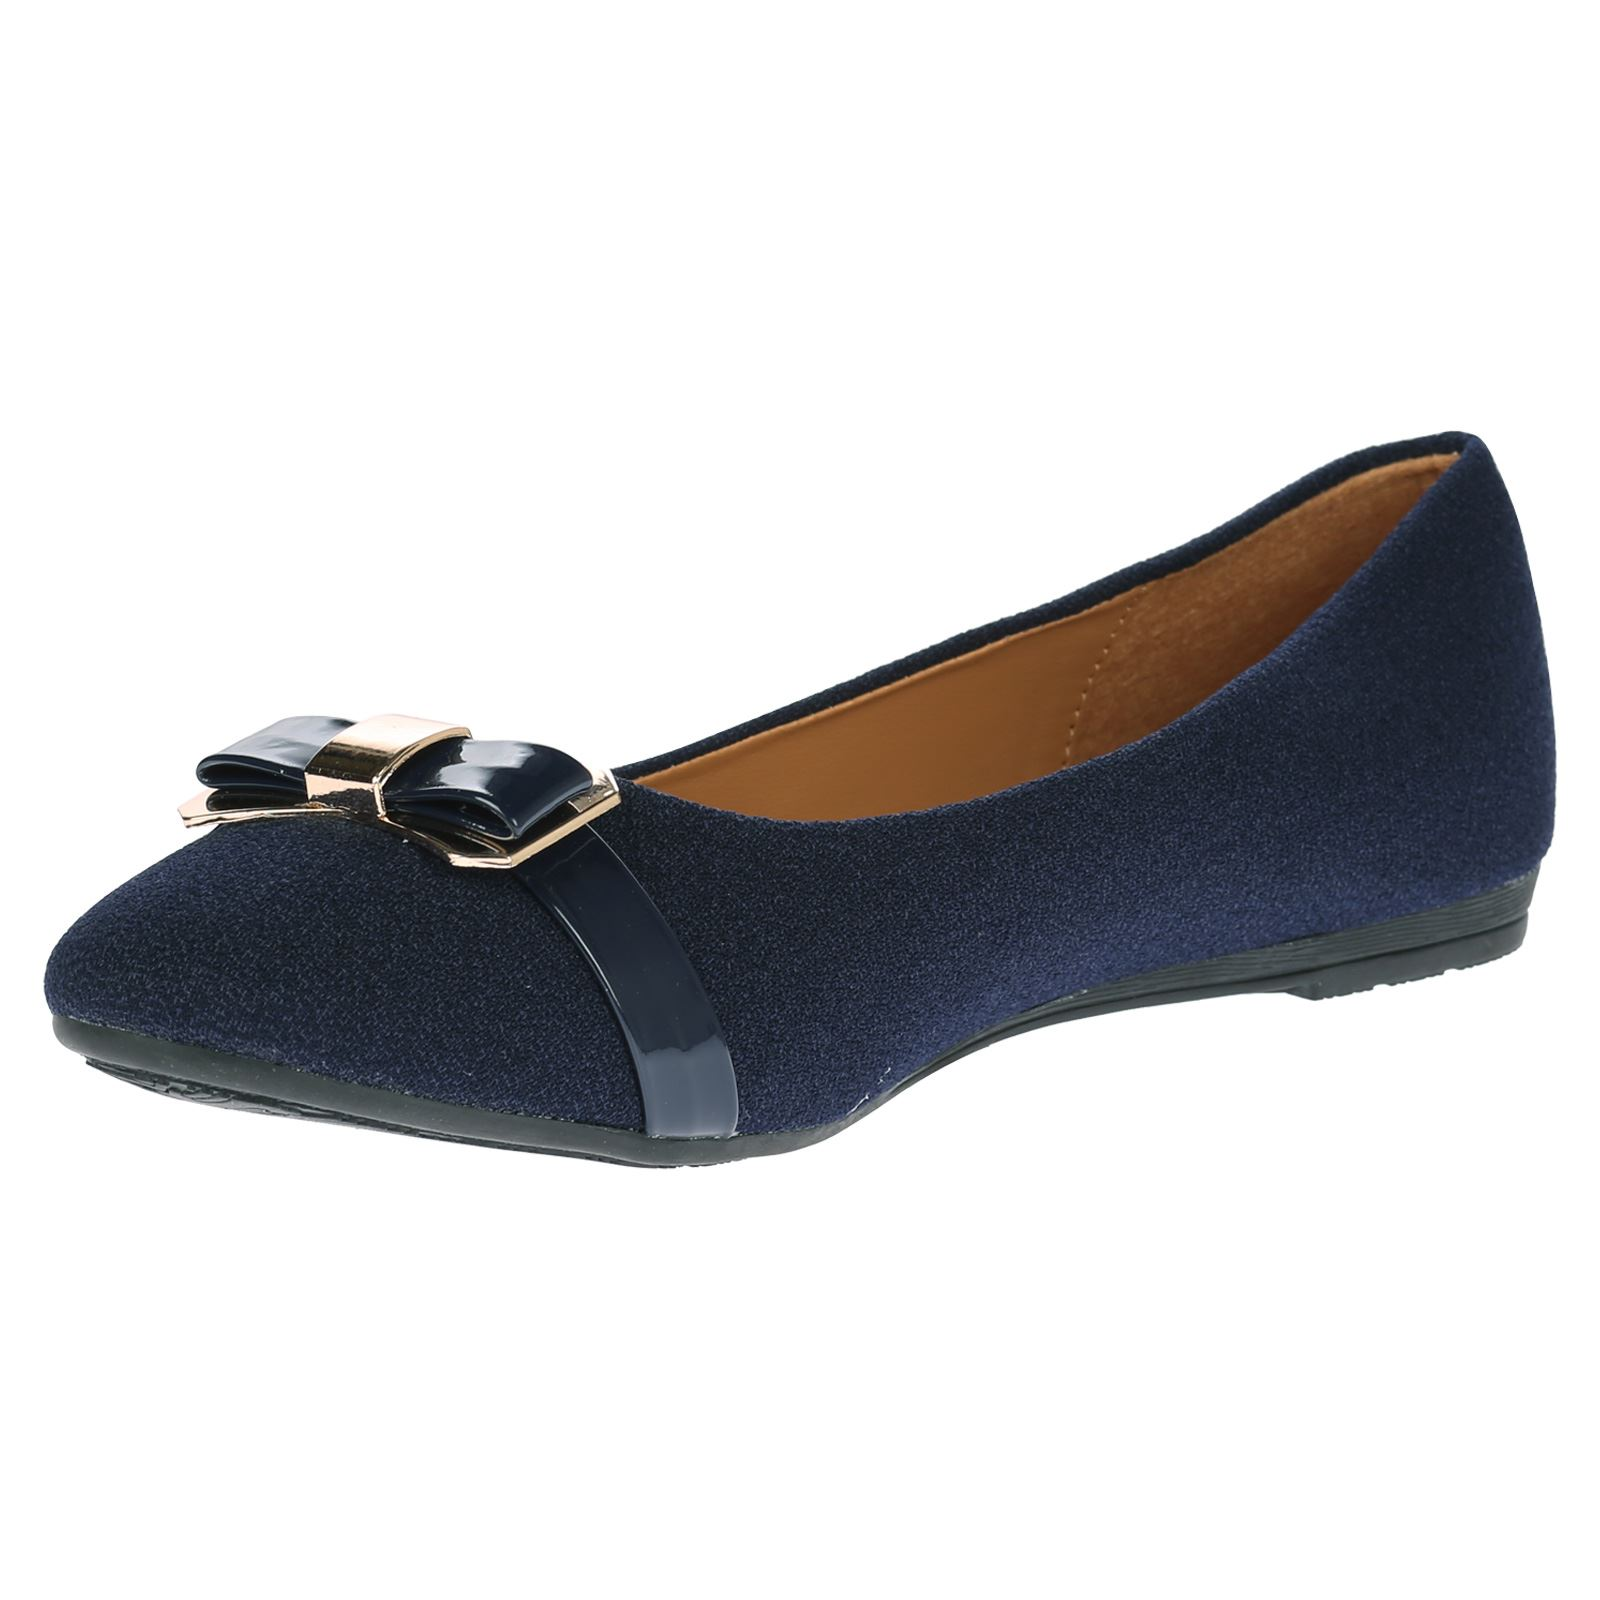 womens shoes pumps work office ballet flats bow low